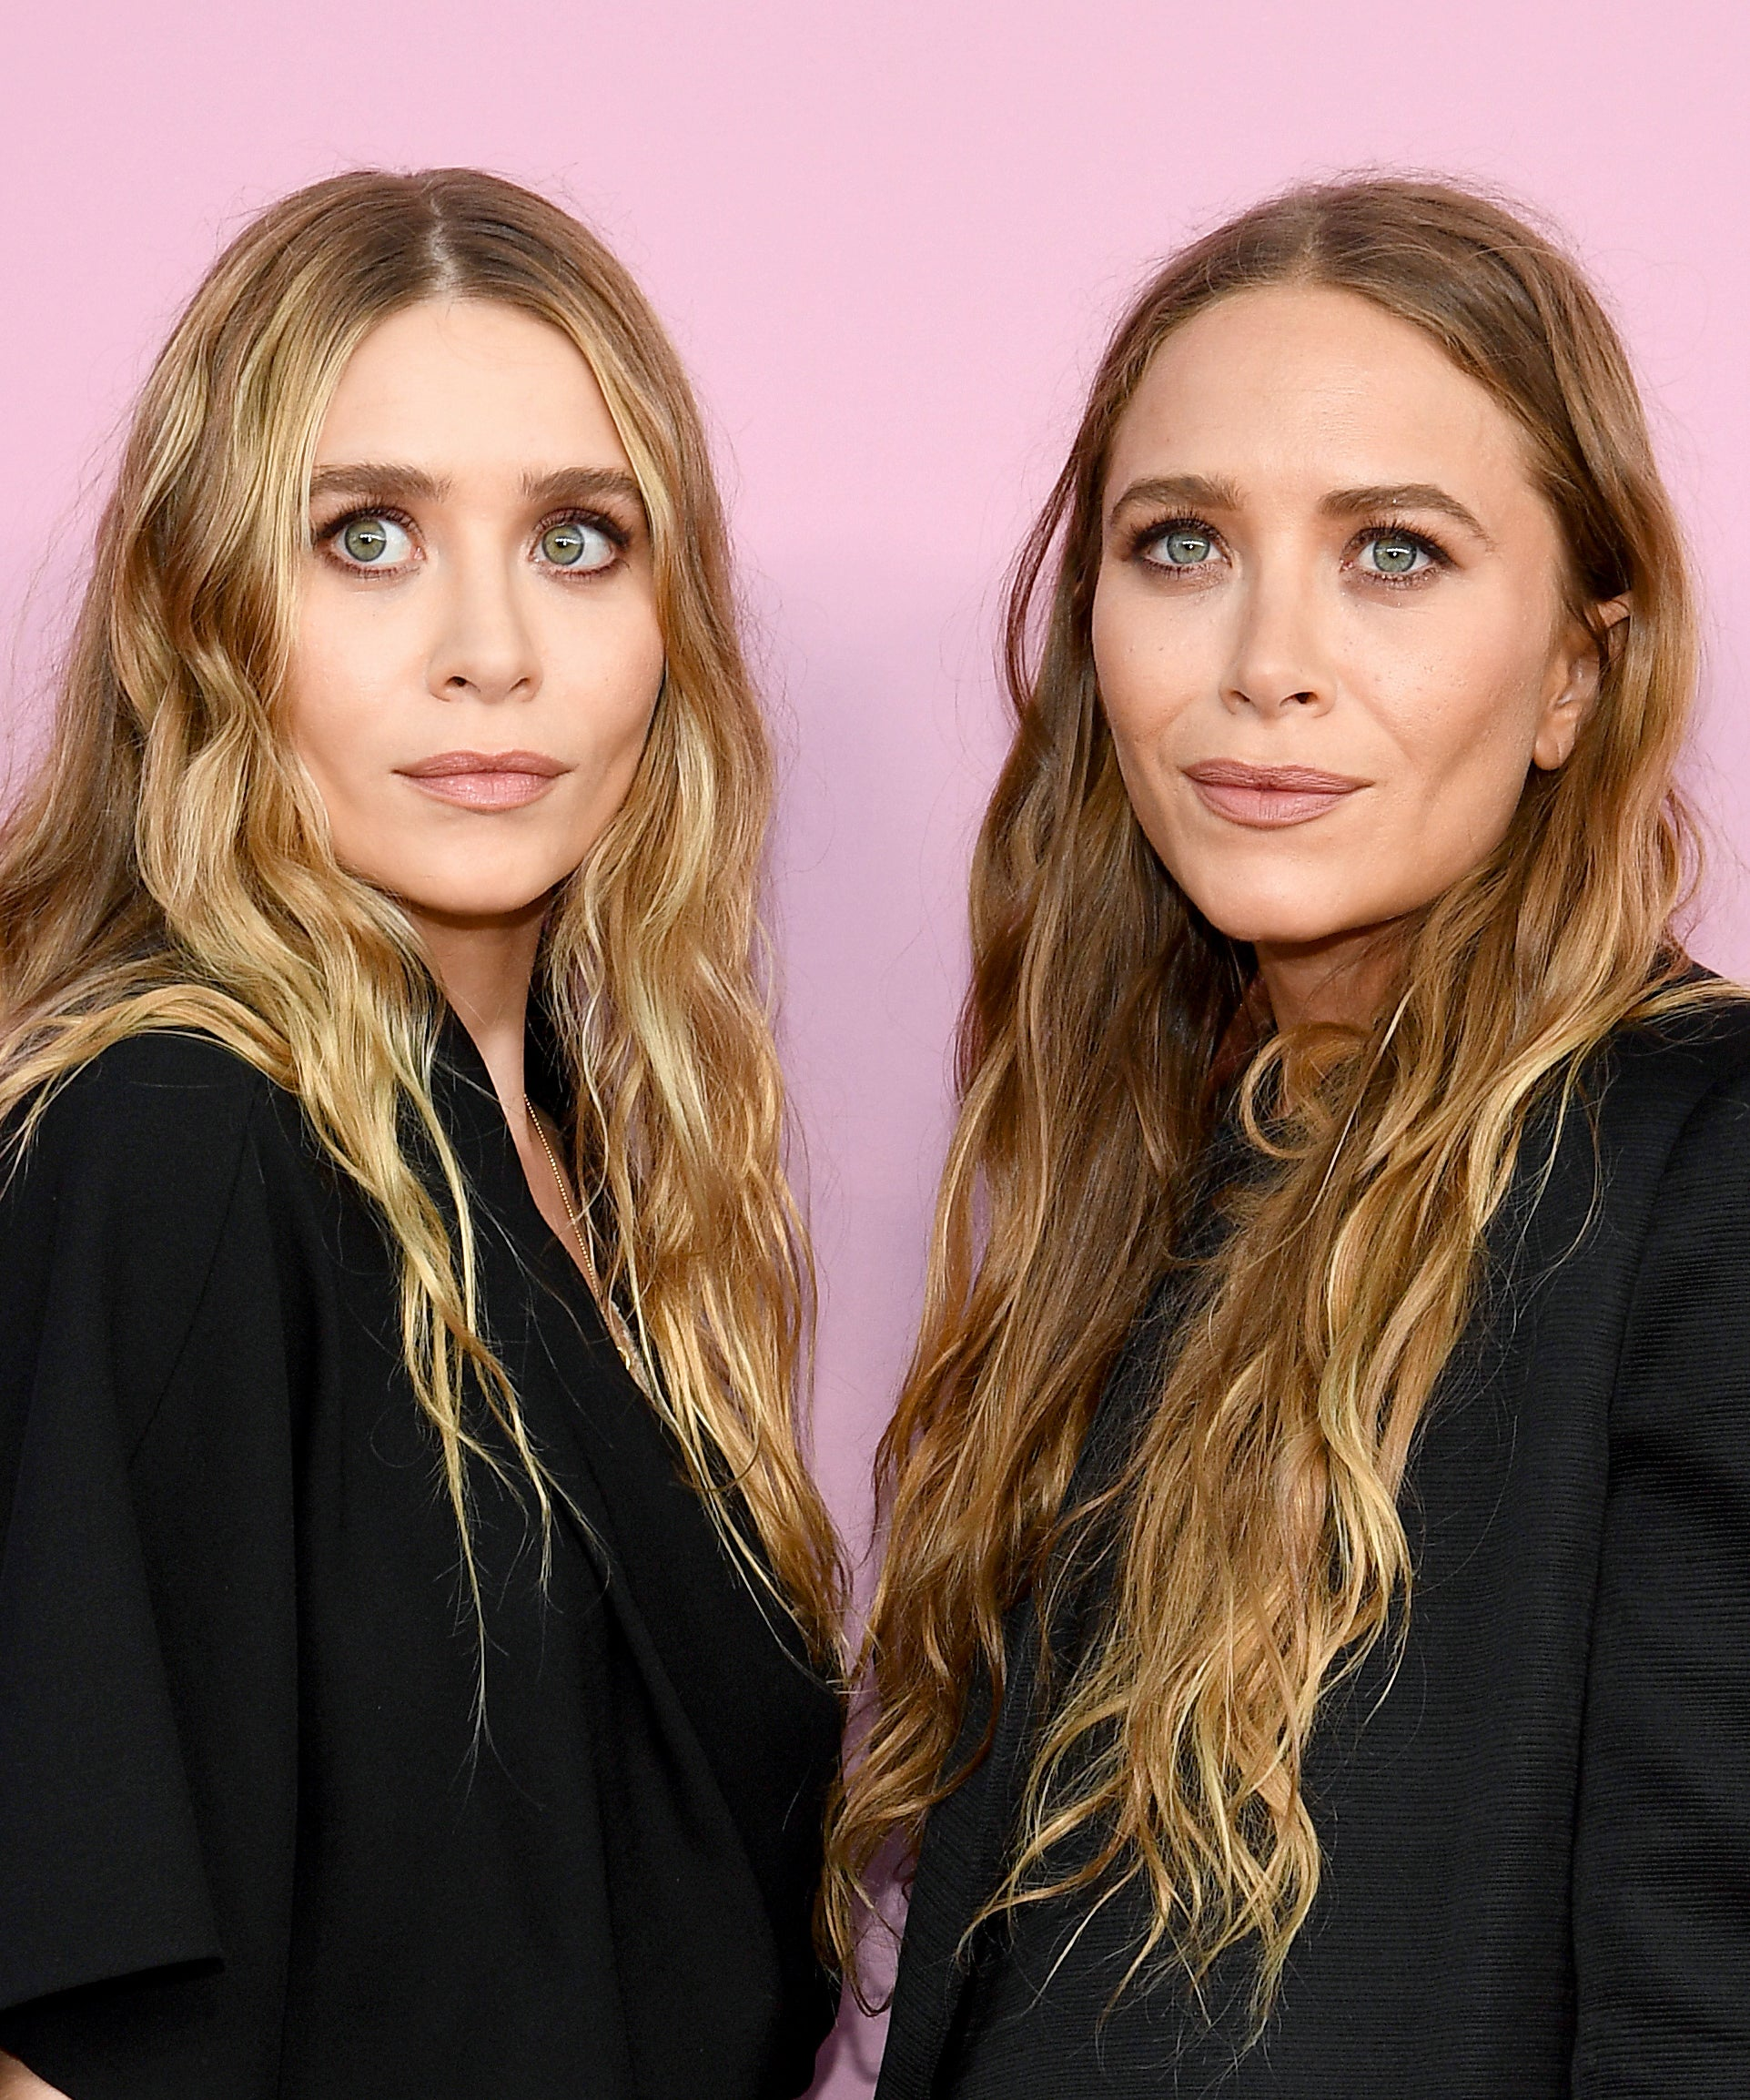 Mary Kate Olsen Wears Fun Braid Hairstyle After Divorce